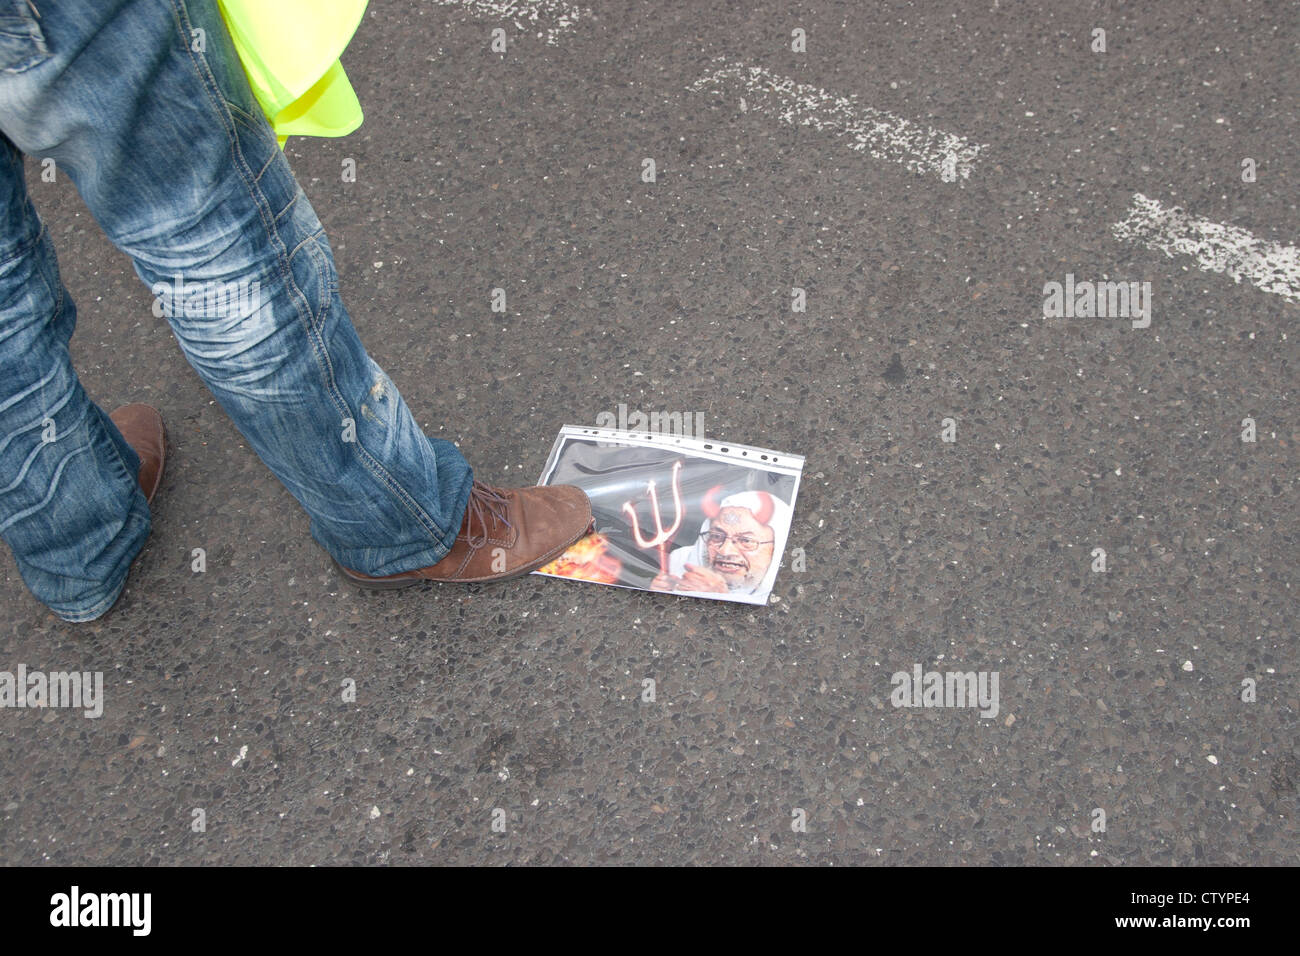 Pro Assad demonstration in Berlin. An Assad loyalist stamps on a picture showing  Yusuf al-Qaradawi. - Stock Image